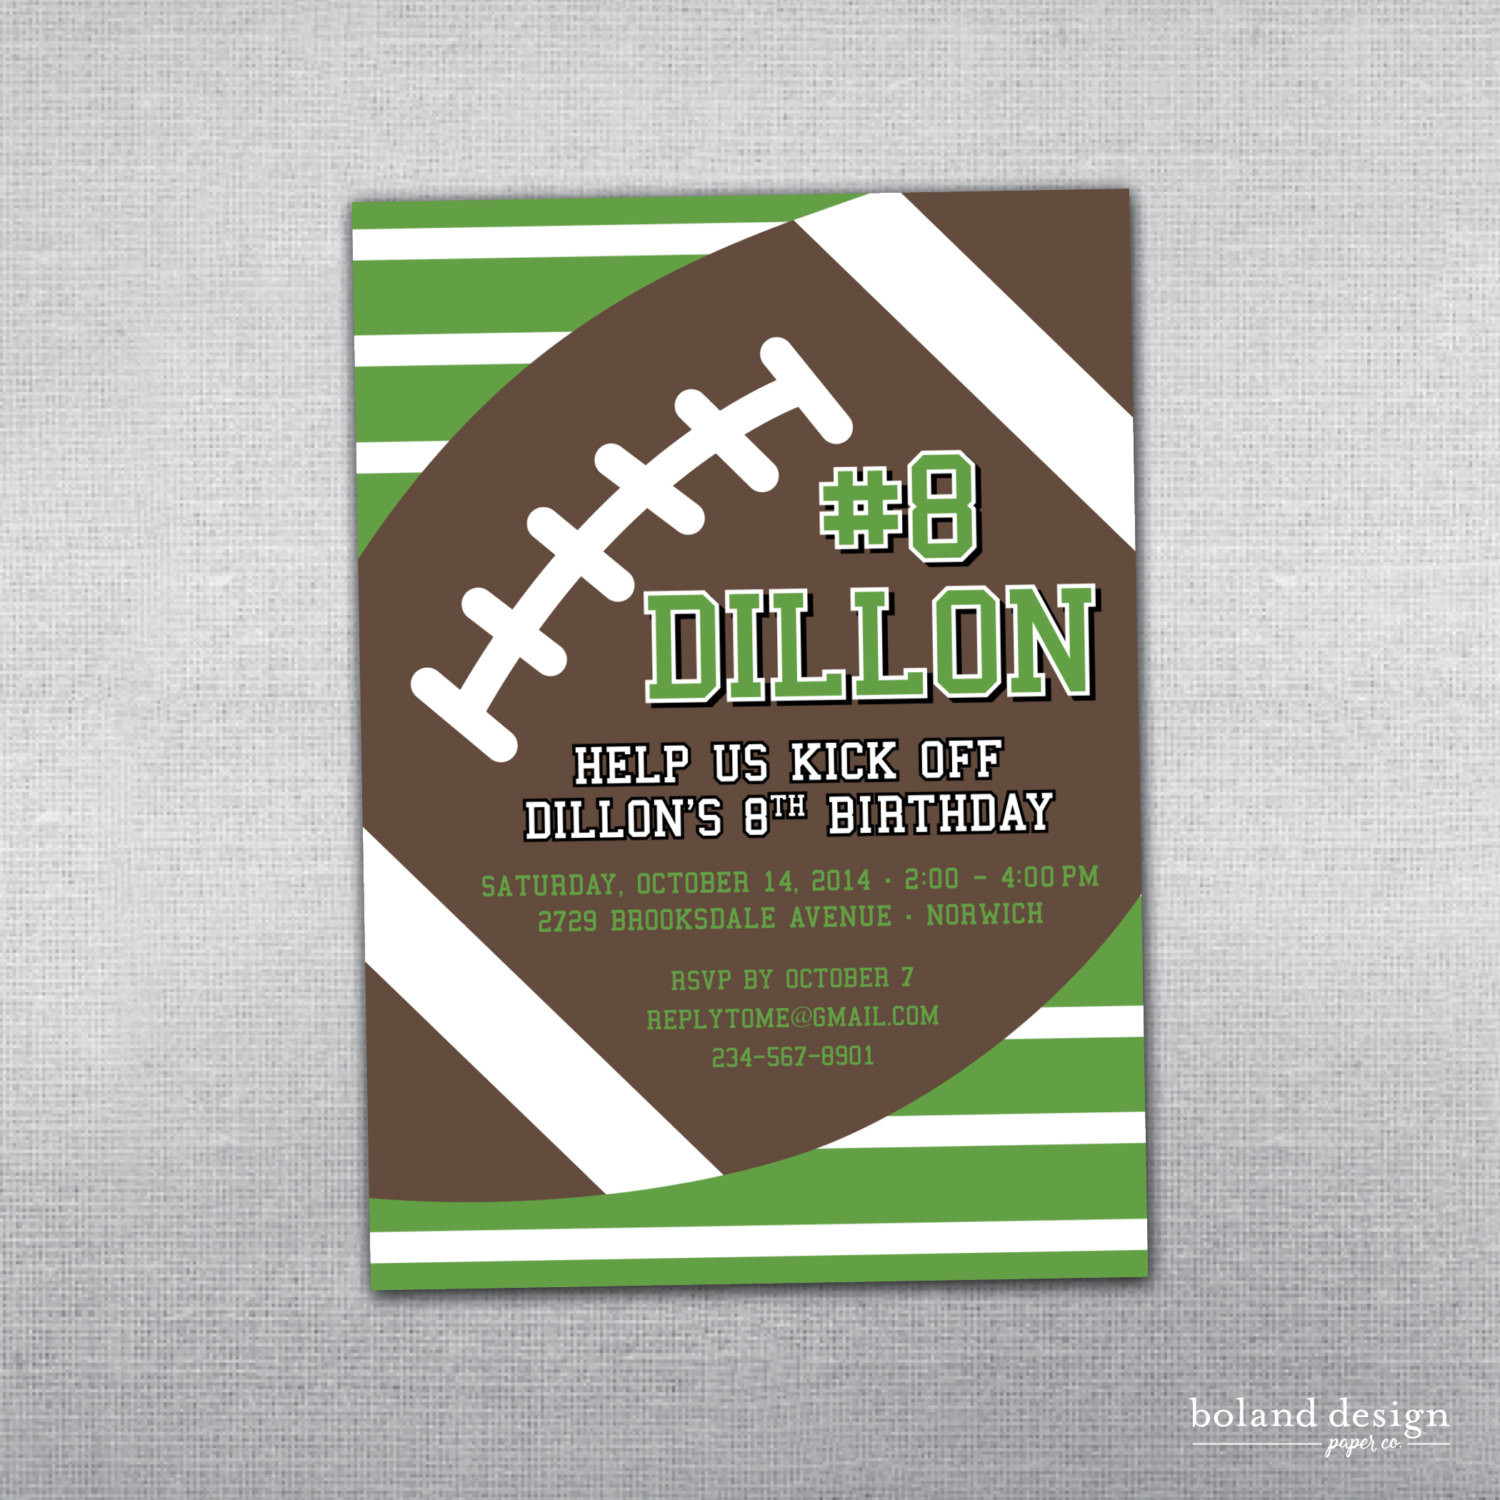 Best ideas about Football Birthday Party Invitations . Save or Pin Football birthday invitation Football party Football Now.